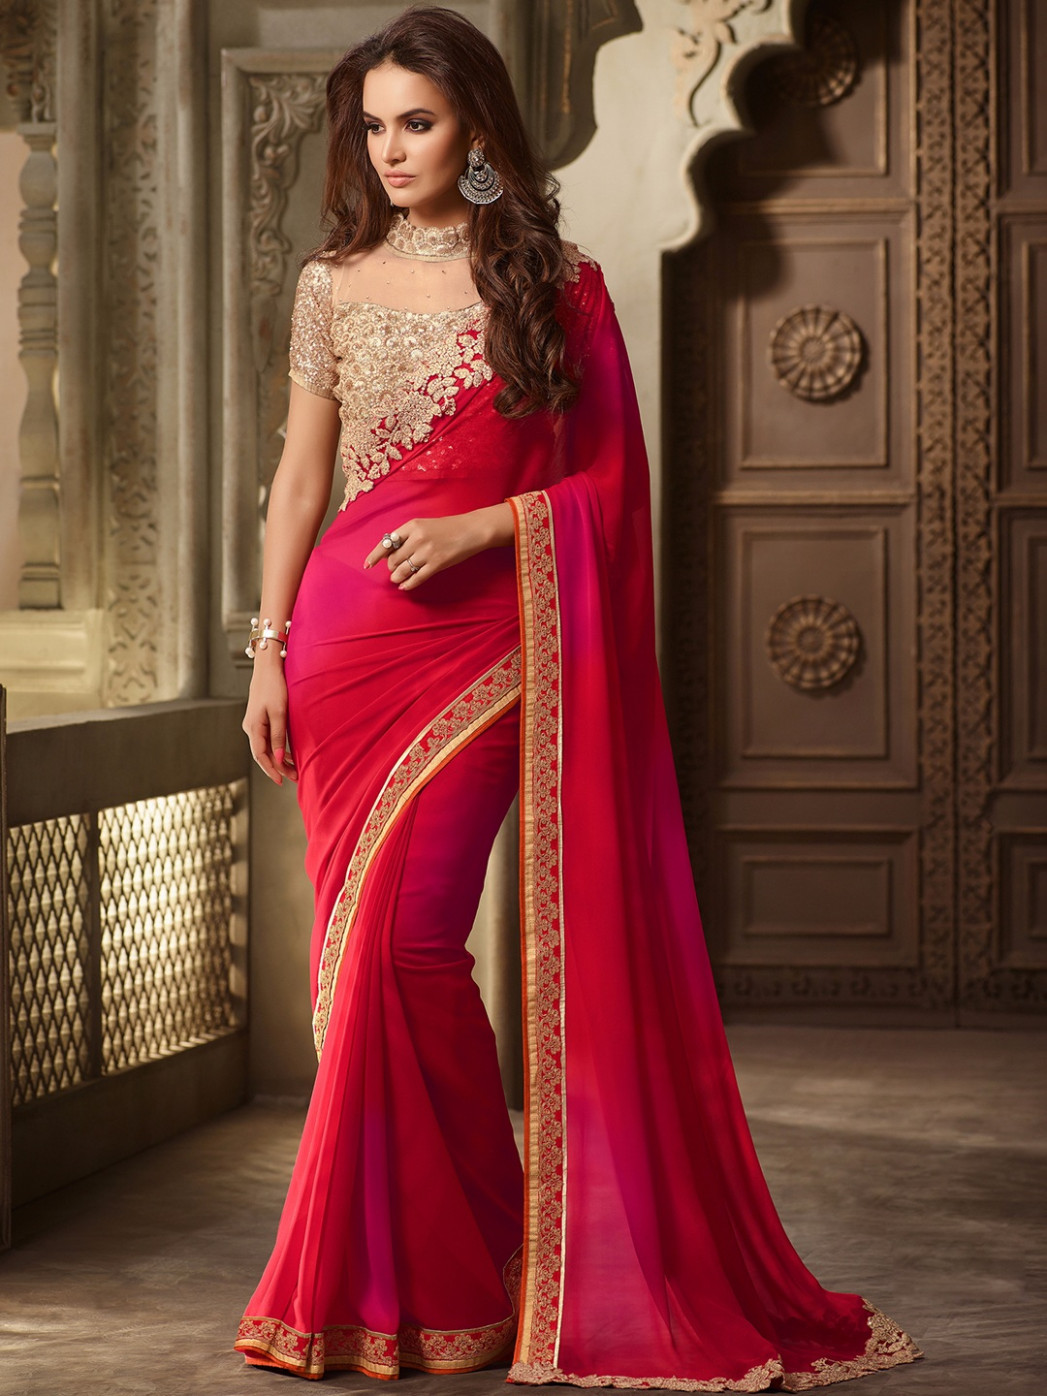 Top 15 Red color sarees you Must Have – G3+ Fashion